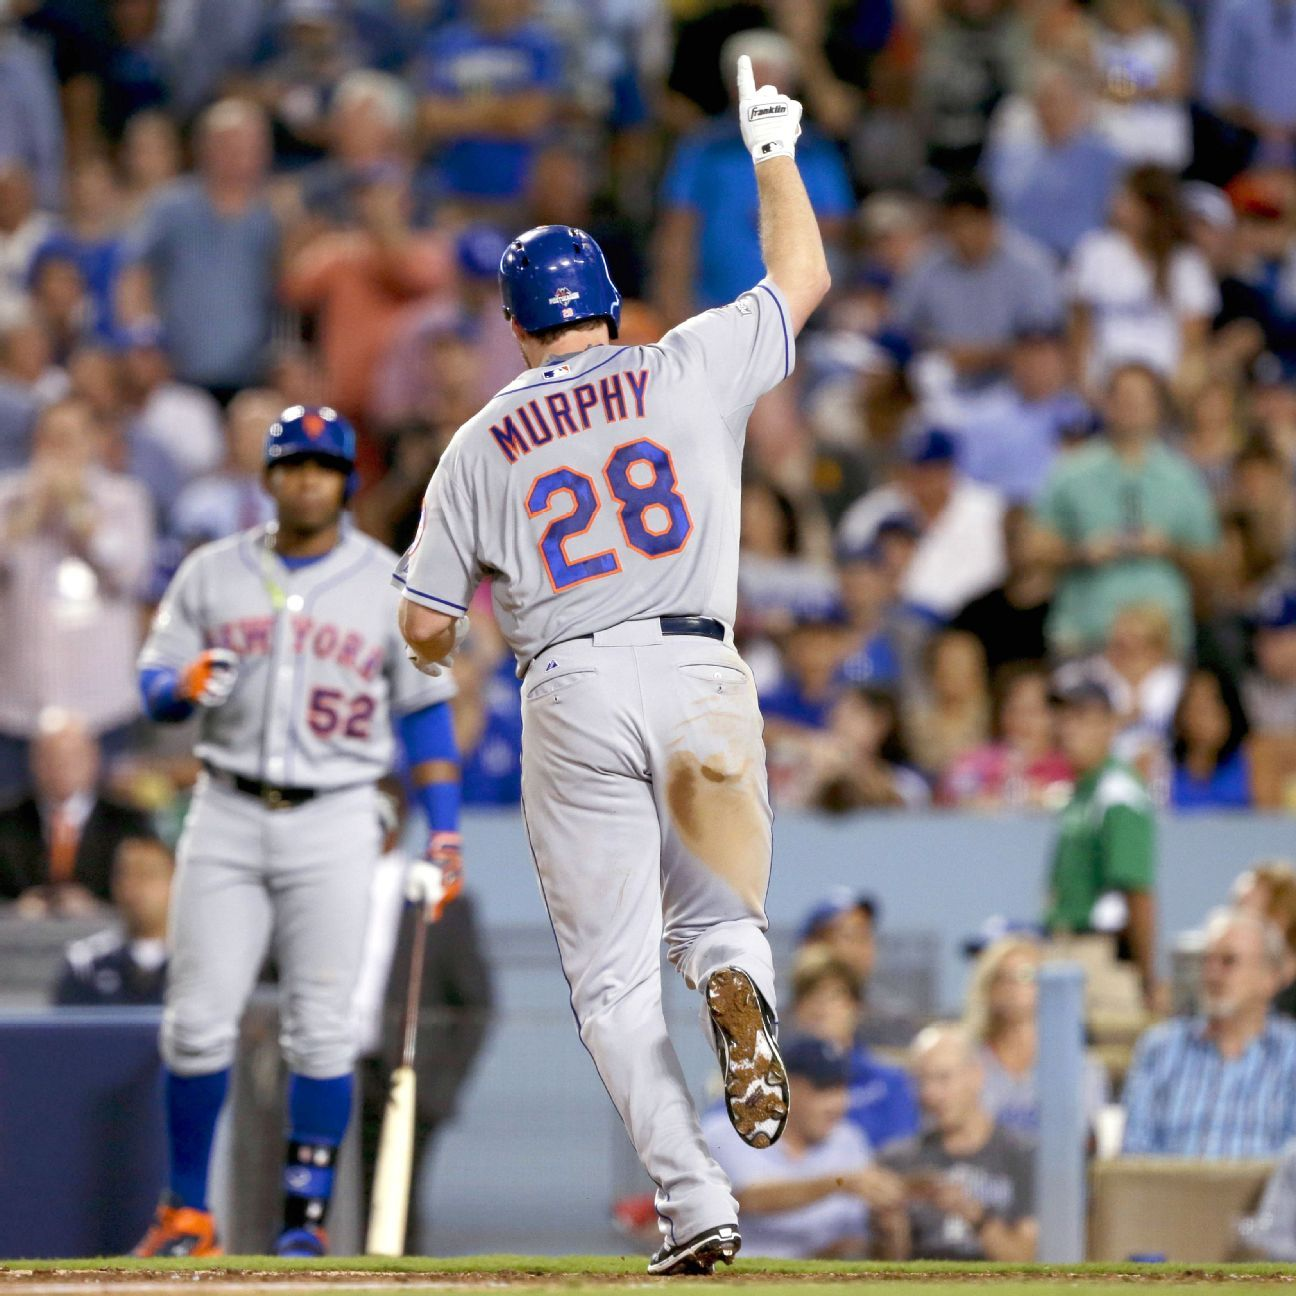 Amazin' performances by Murphy, deGrom send Mets to NLCS